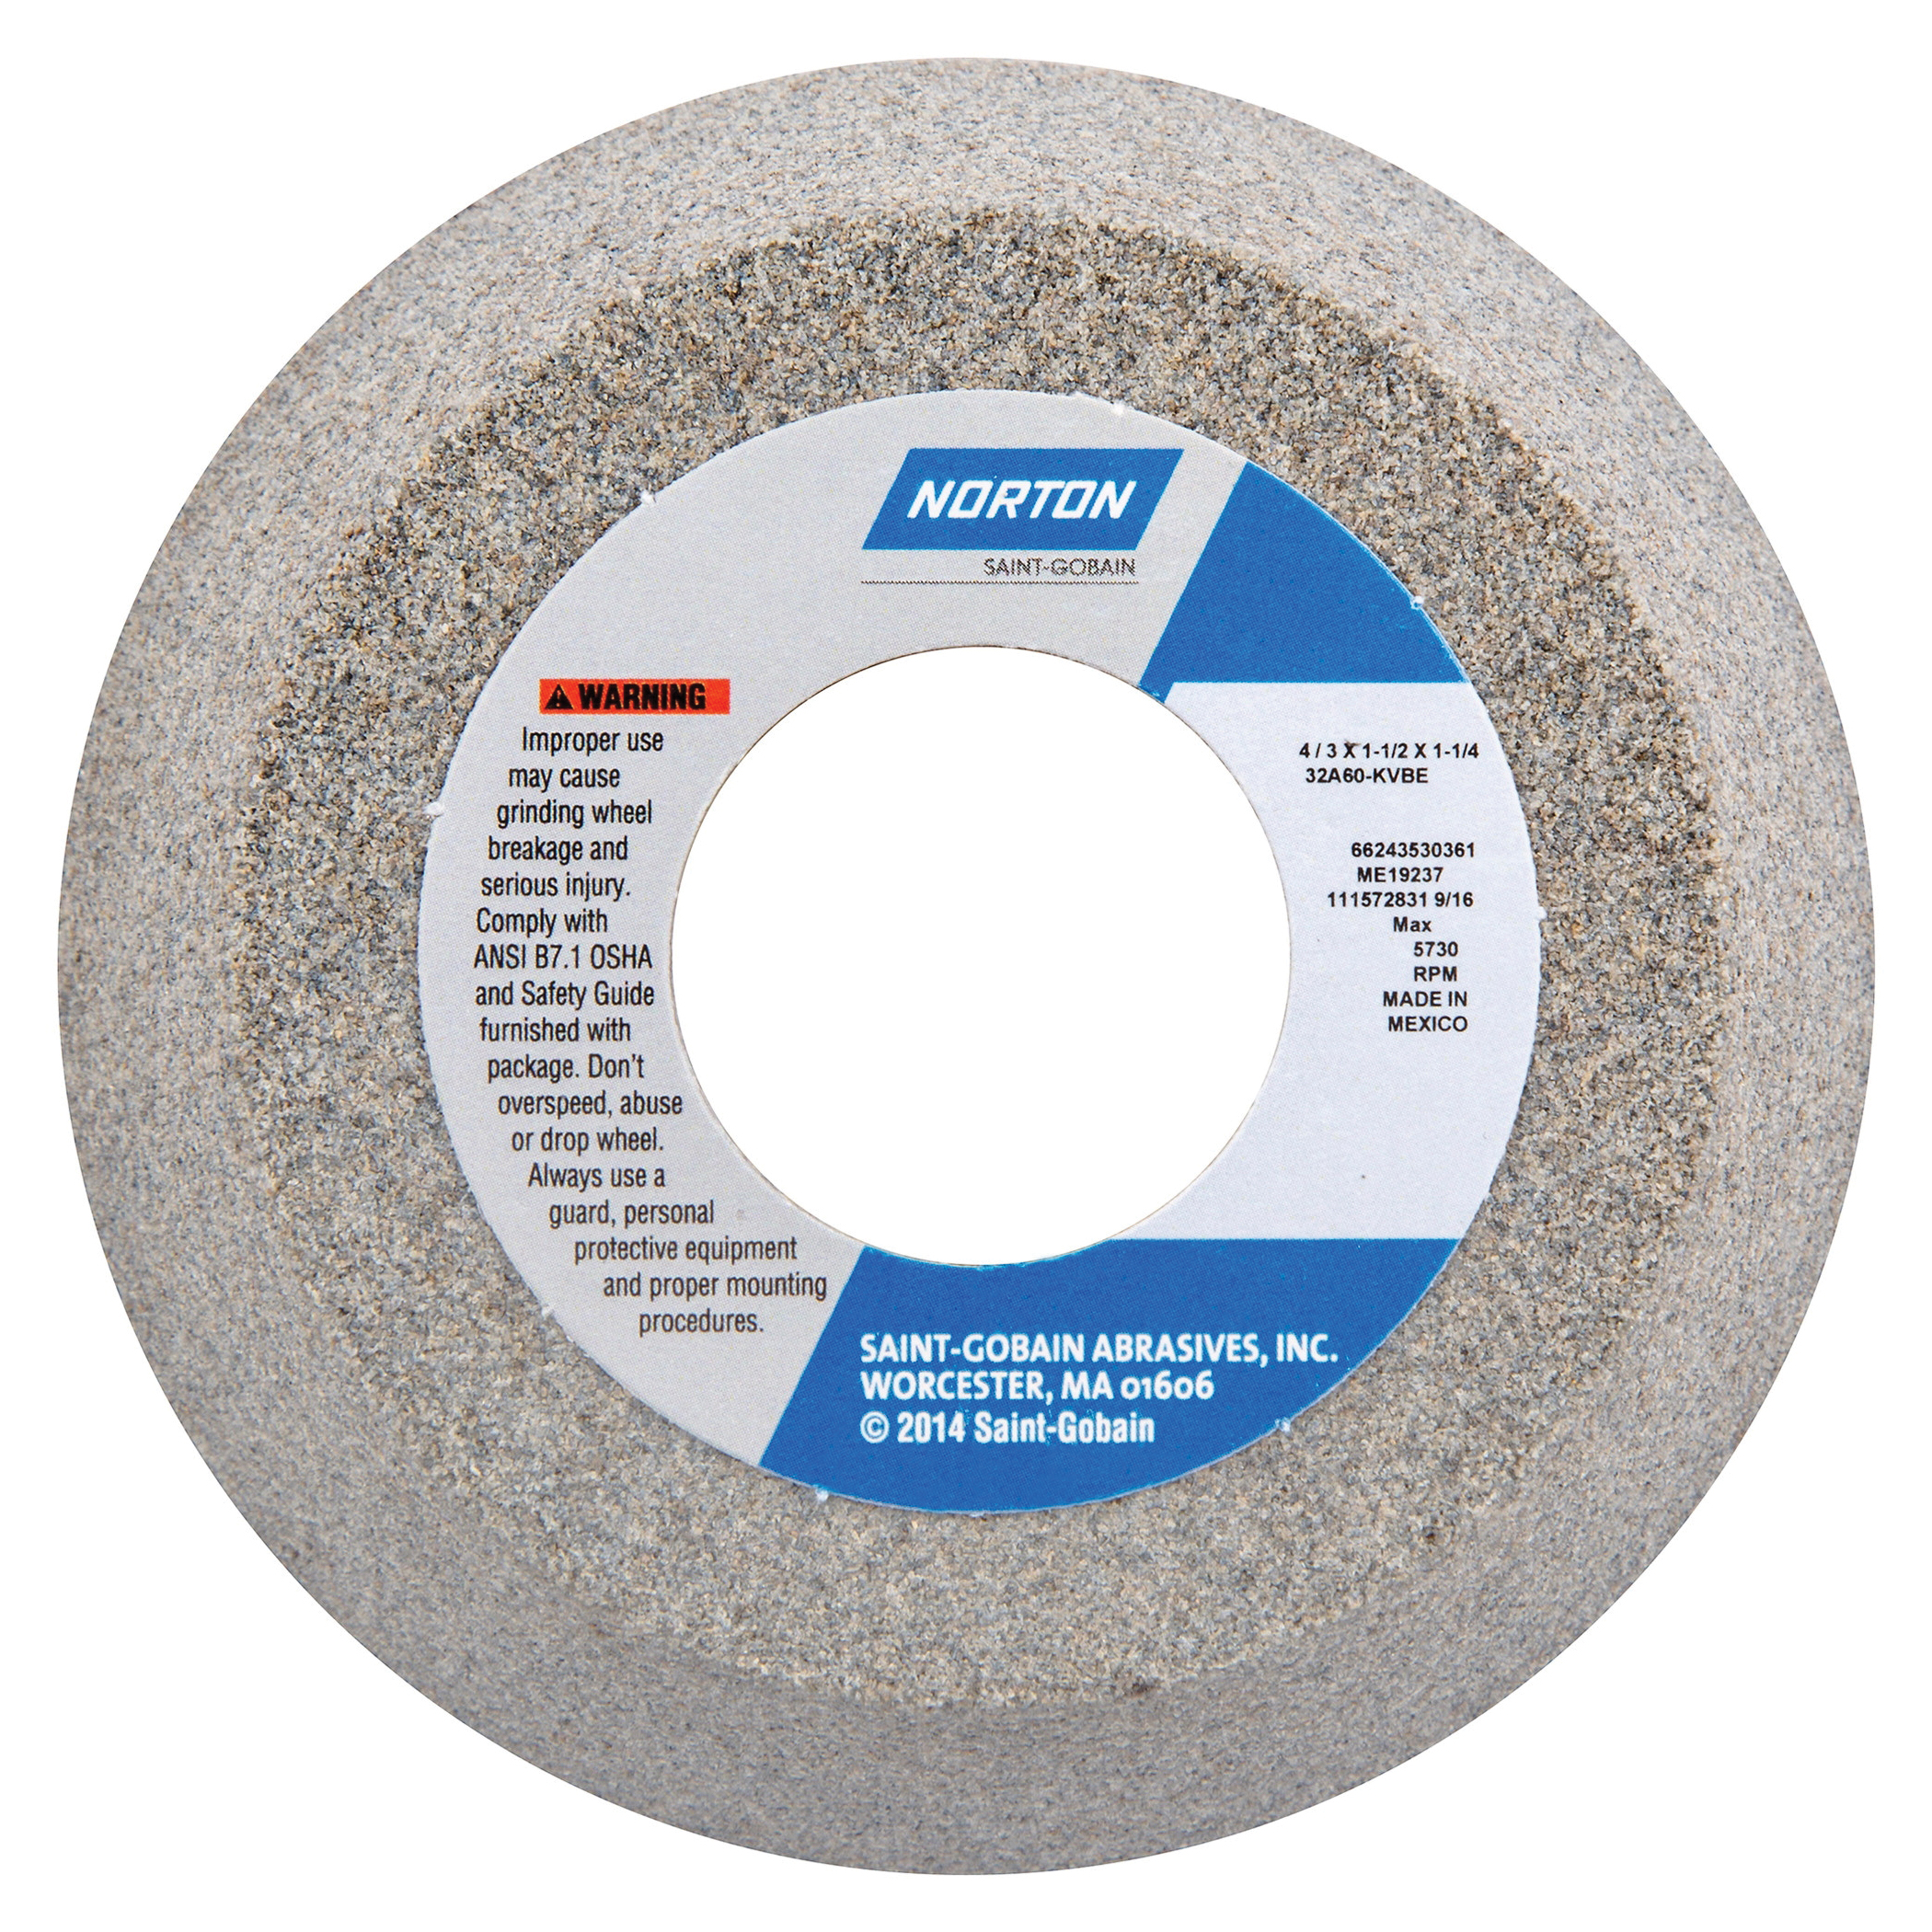 Norton® 66243530368 32A Toolroom Wheel, 4 in Dia x 1-1/2 in THK, 1-1/4 in Center Hole, 80 Grit, Aluminum Oxide Abrasive